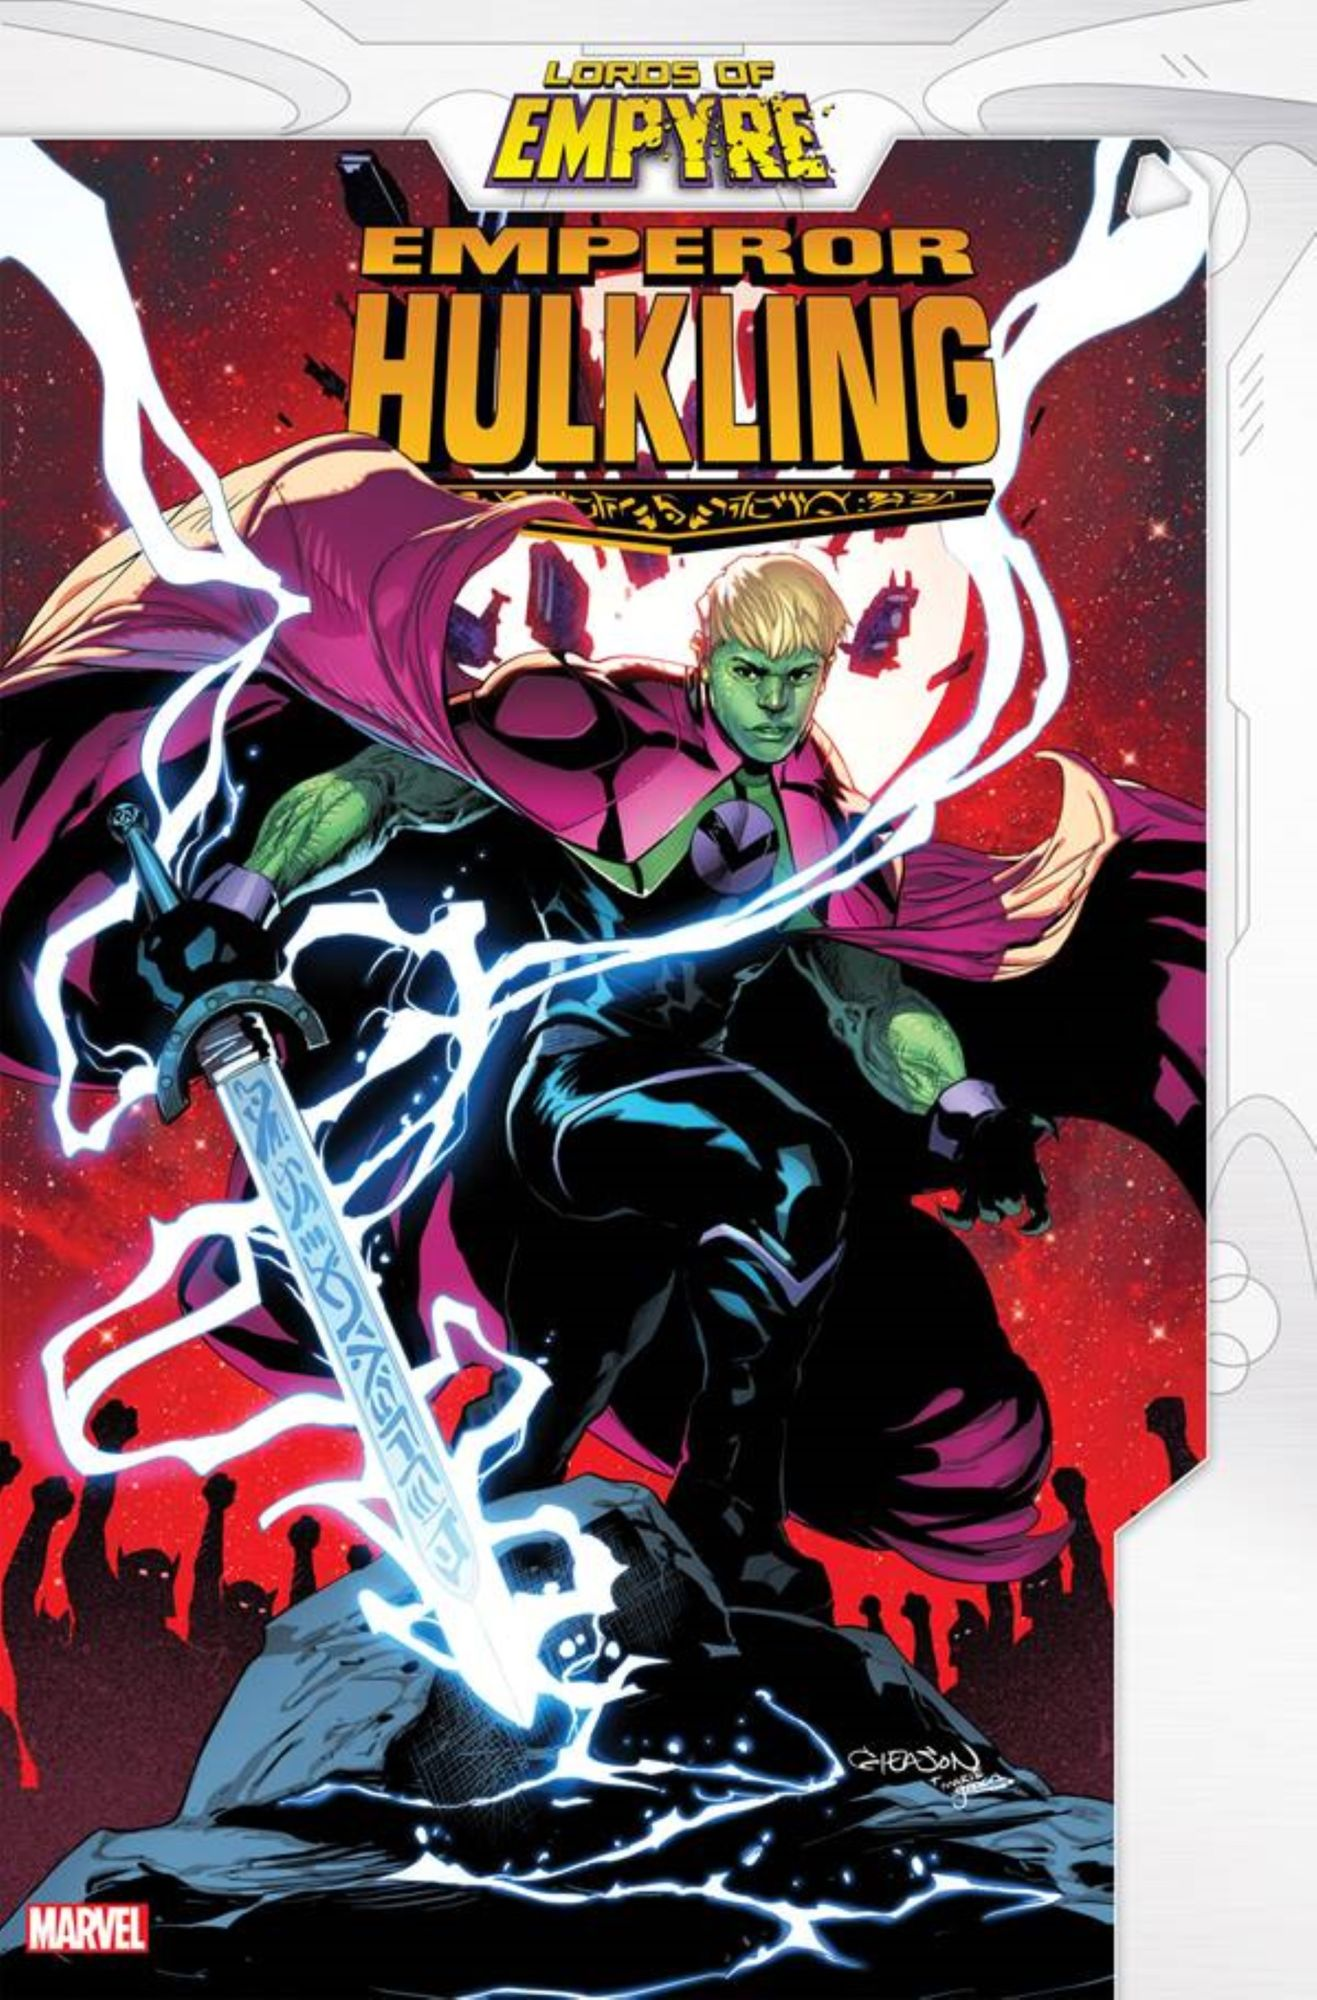 Zdarsky, Oliveira and Garcia's Essential Empyre Spin-Off For Hulking - Lord of Empyre